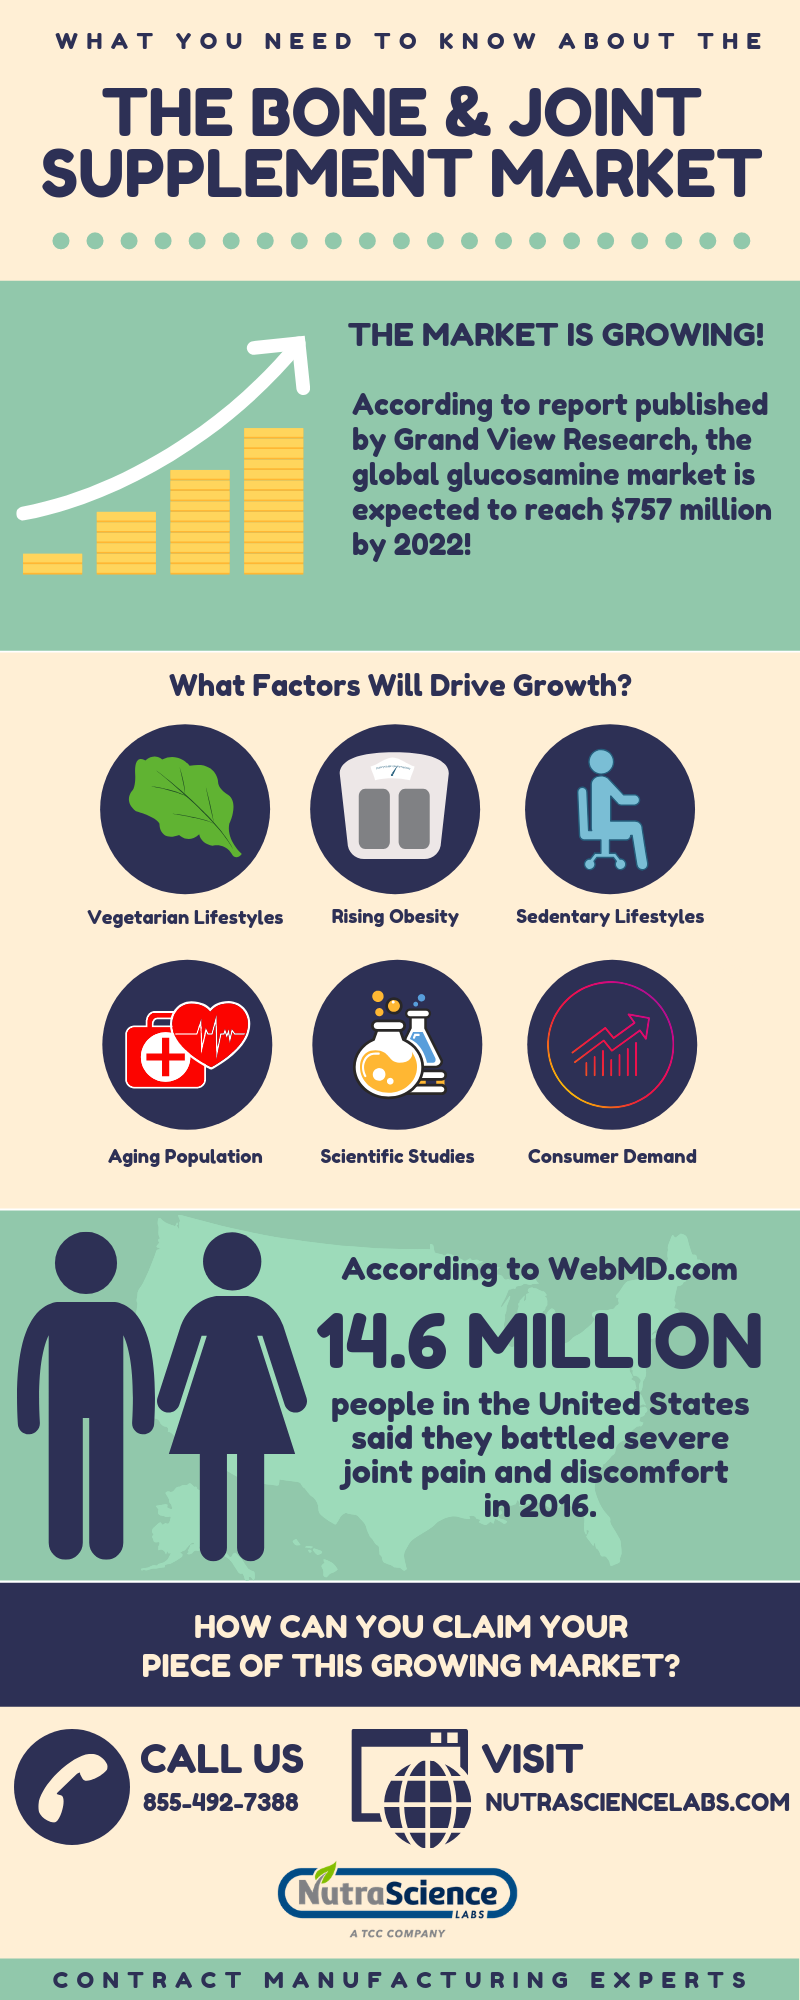 What You Need to Know About the Bone and Joint Supplement Market - Infographic